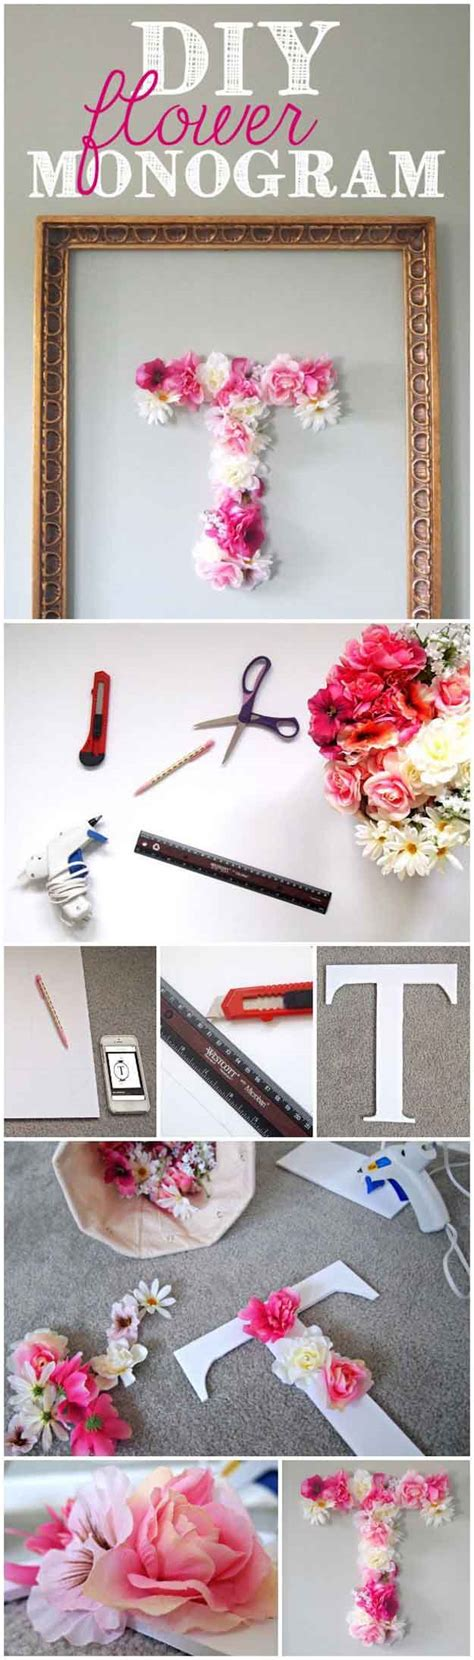 room crafts for 37 insanely bedroom ideas for diy decor crafts